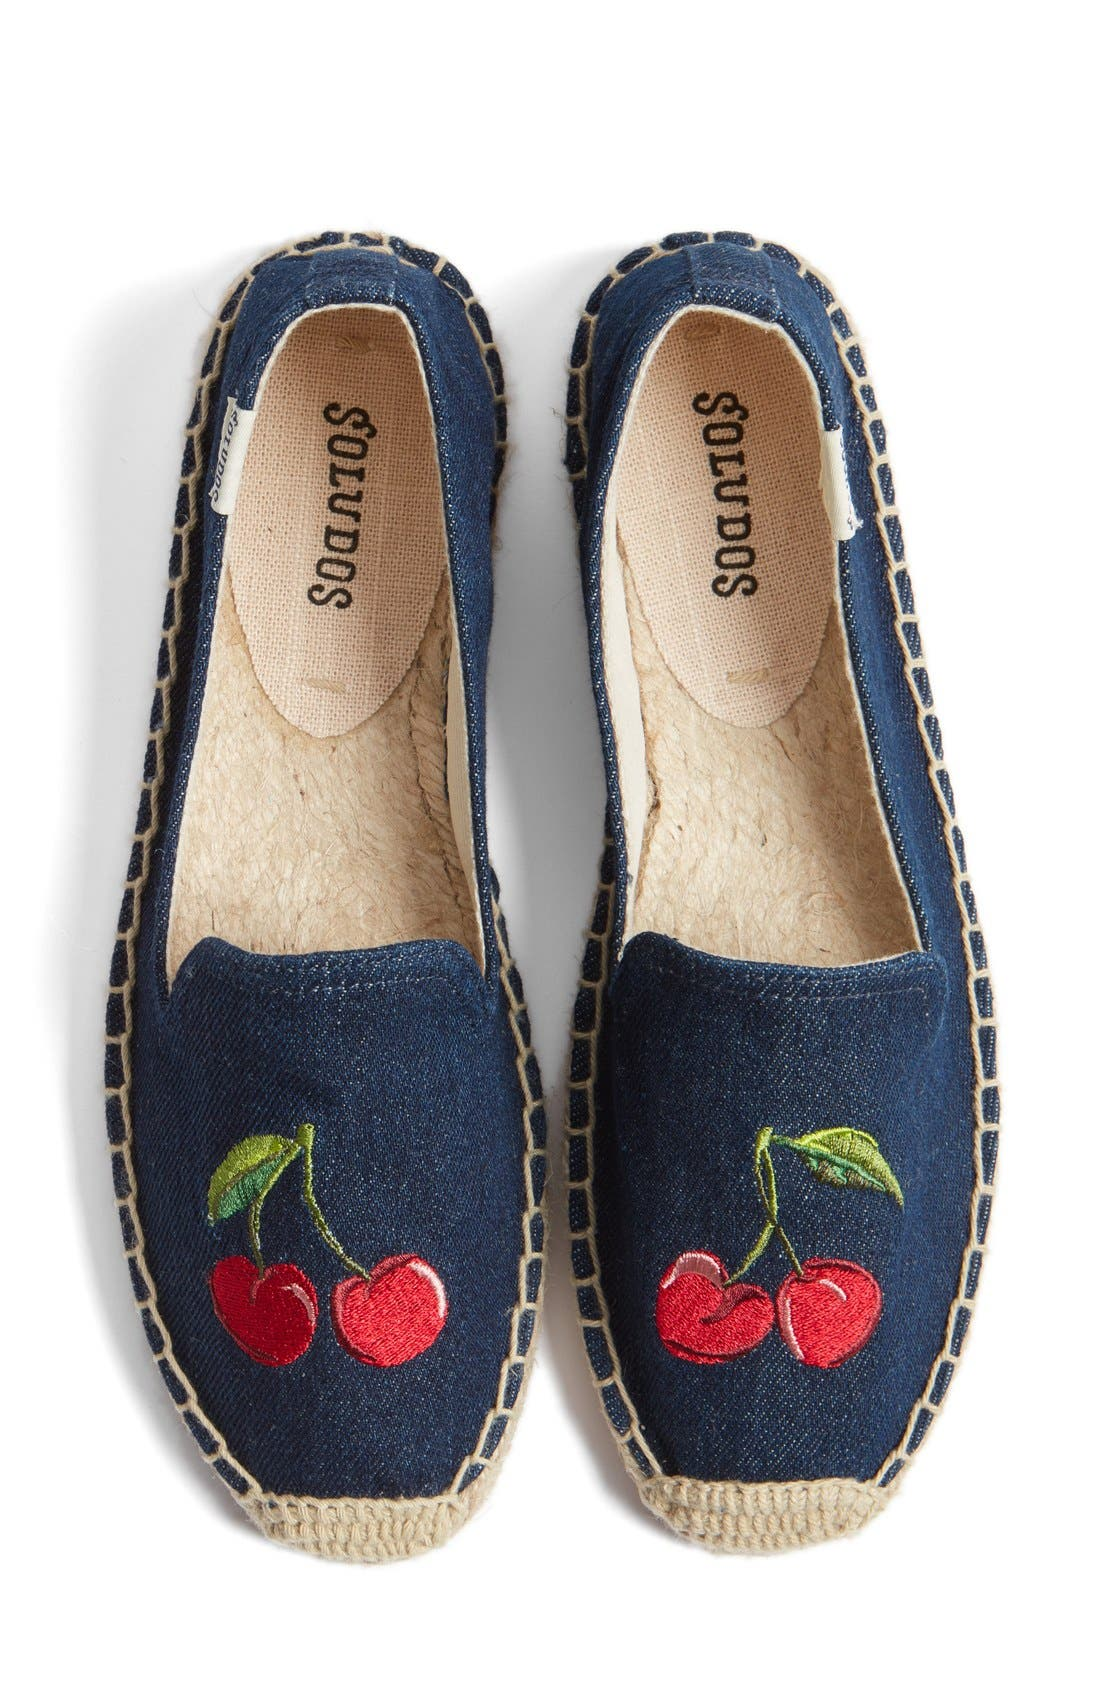 Soludos Cherry Embroidered Espadrilles RtaHPB